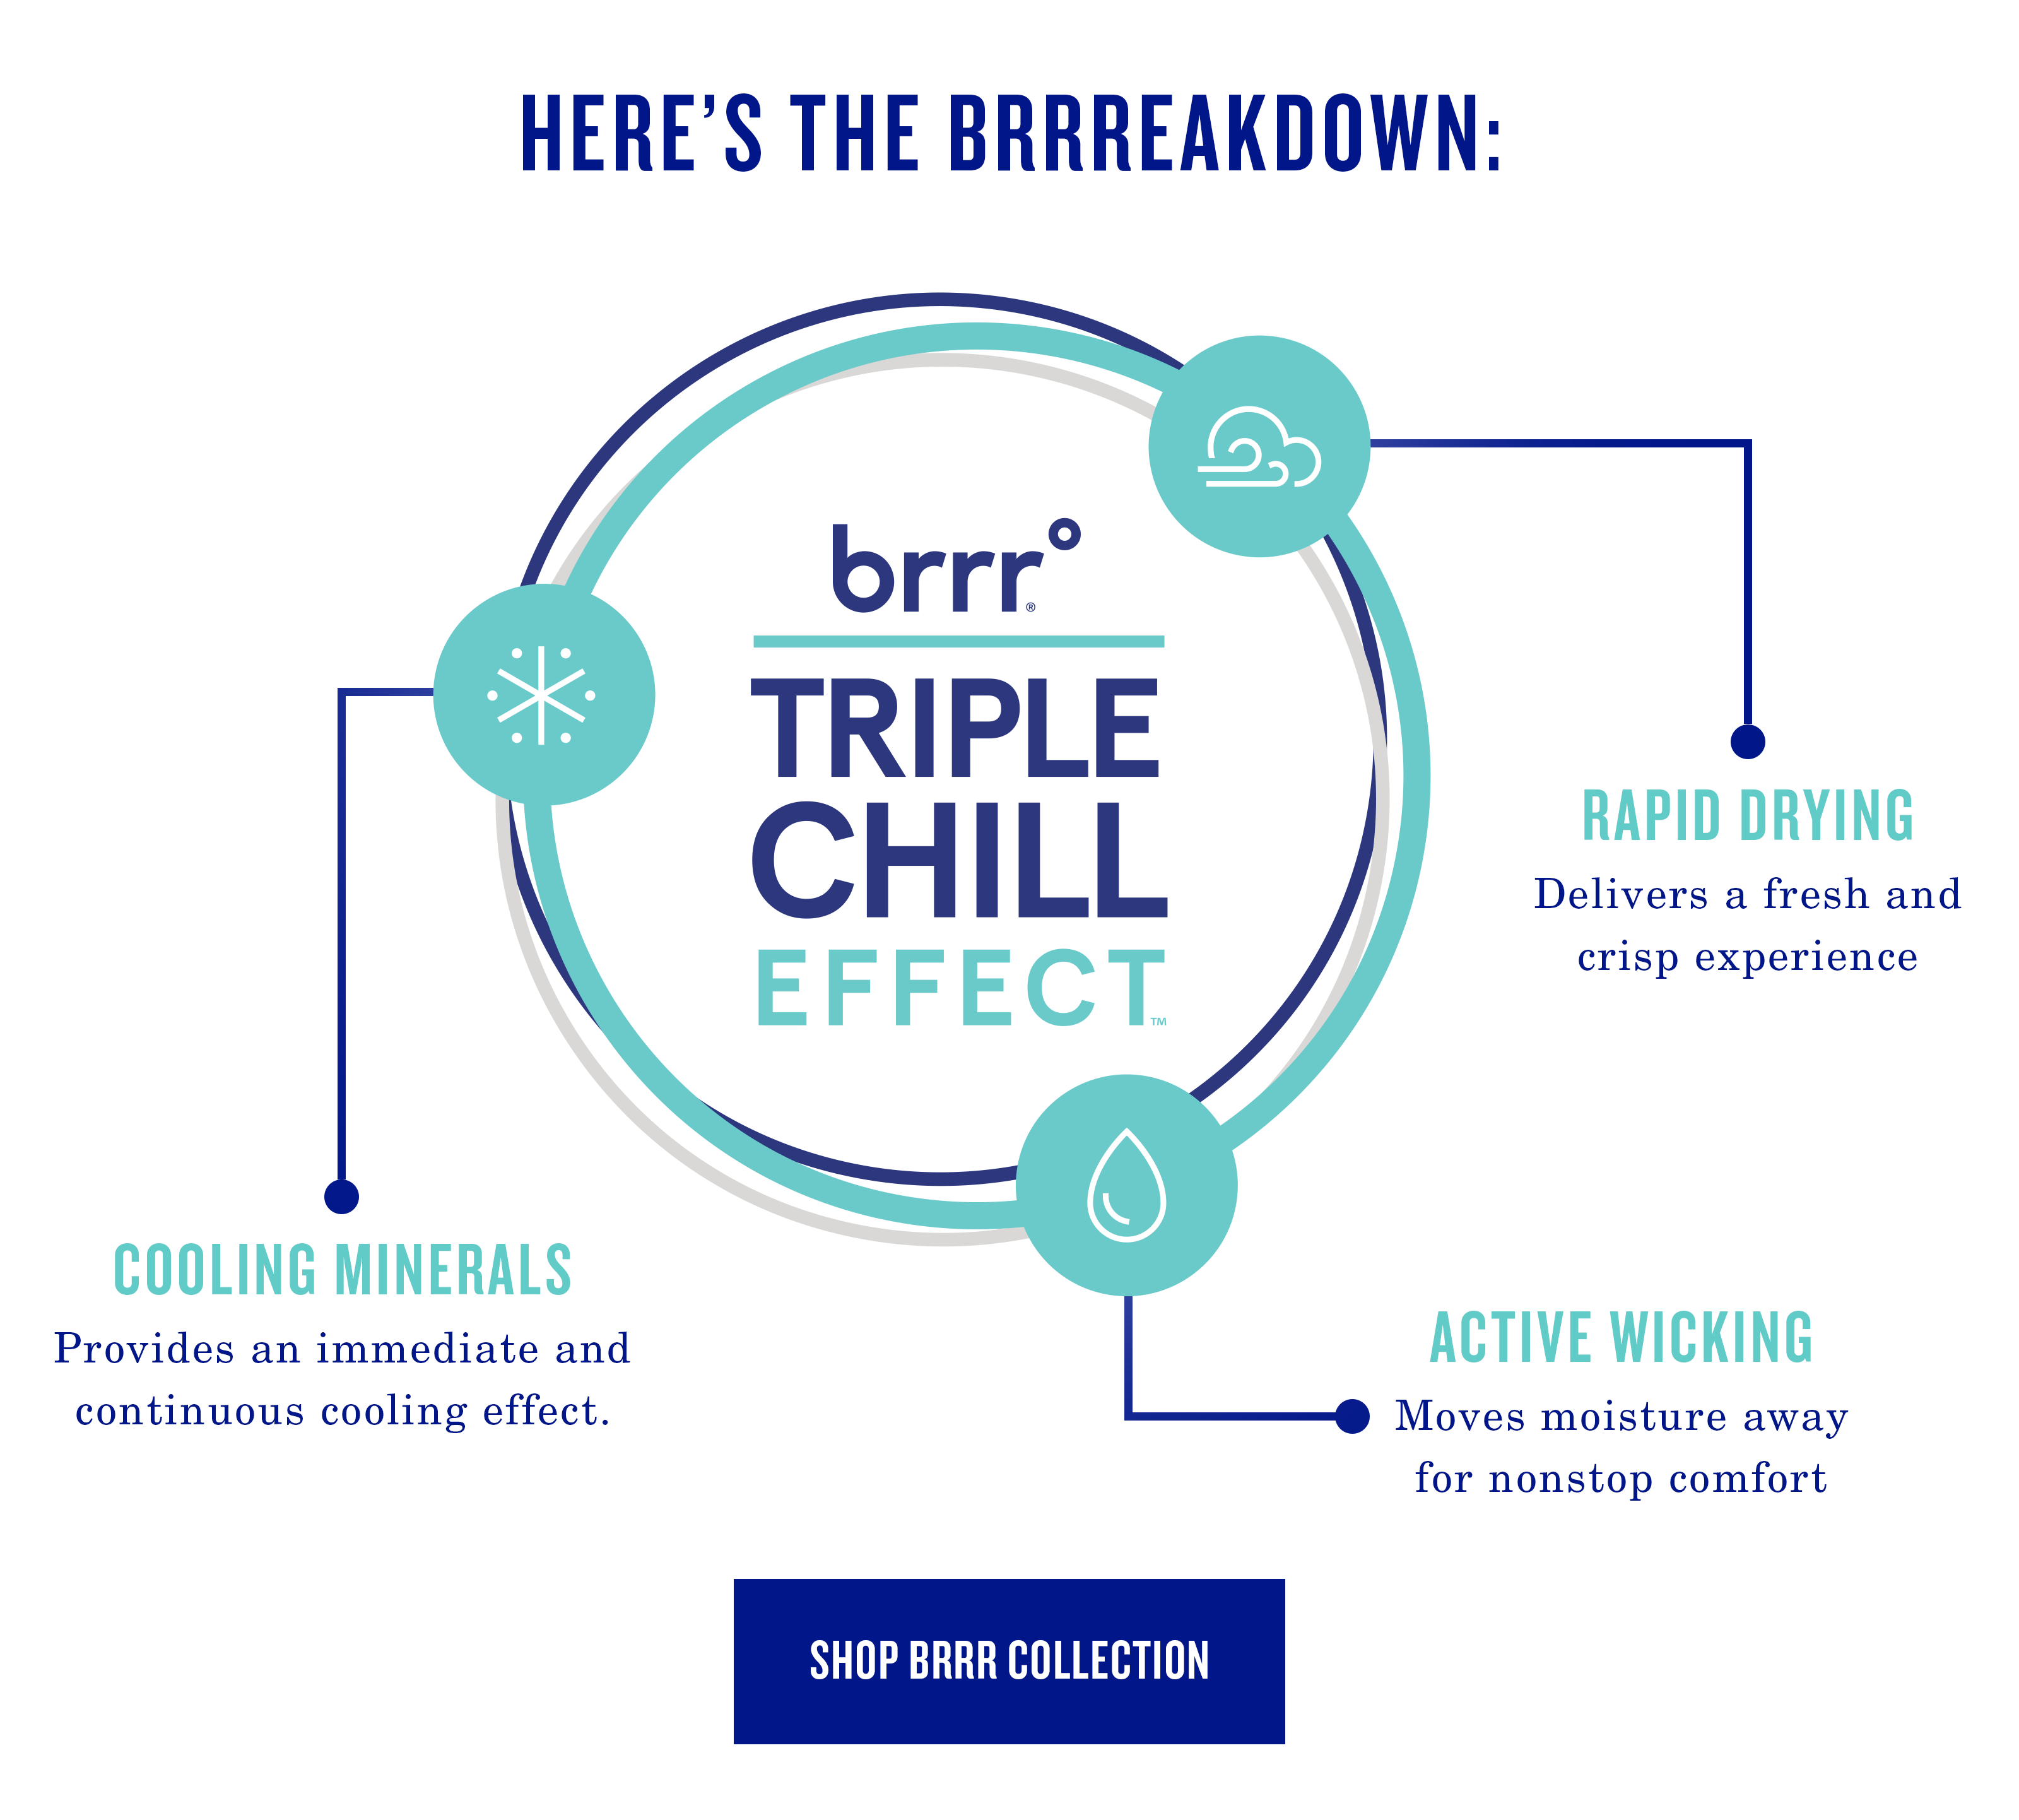 brrr triple chill technology explanation